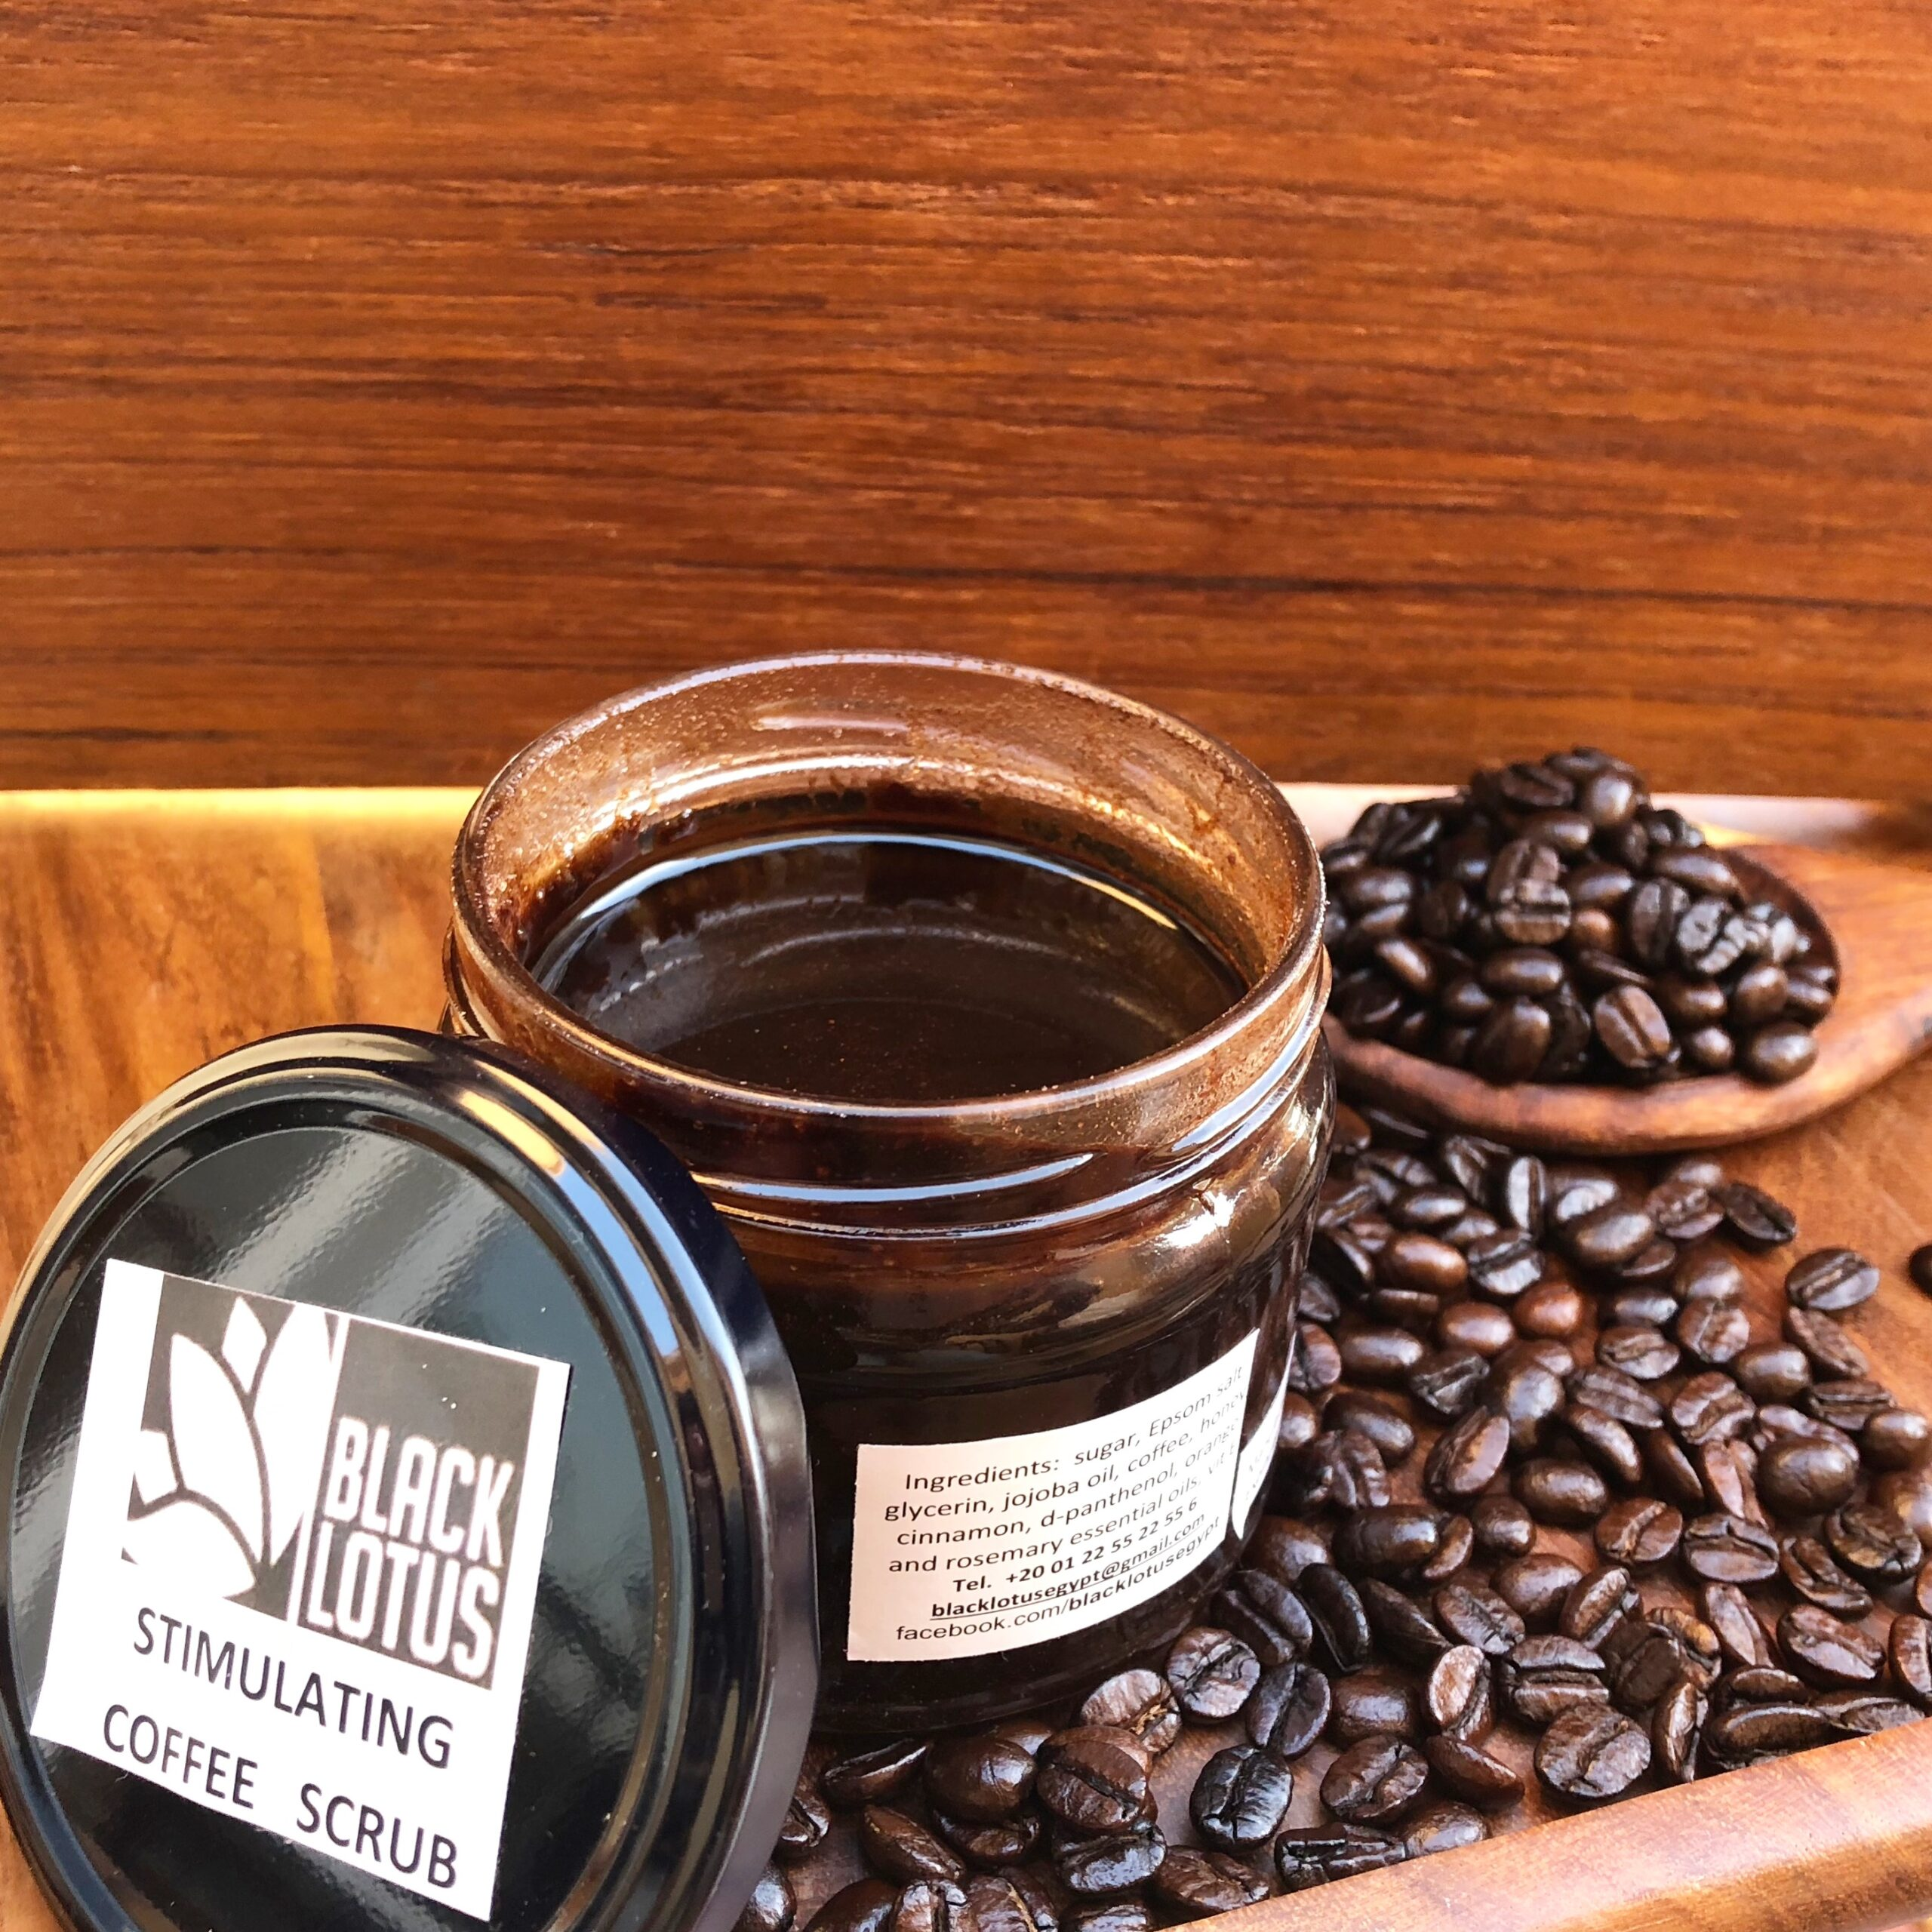 Stimulating Coffee Scrub